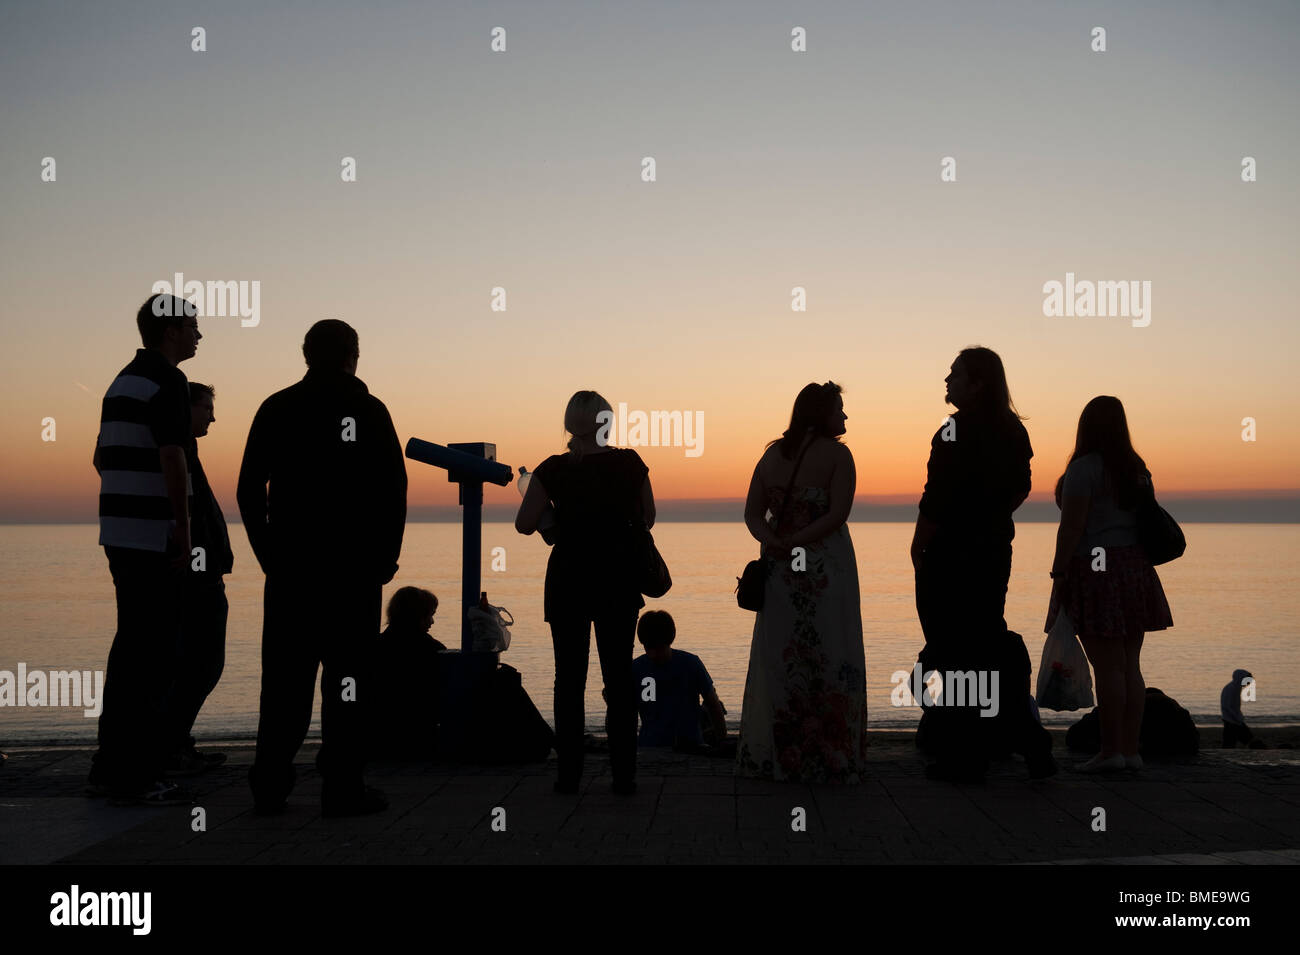 A group of people in silhouette looking at the sunset over Cardigan Bay, Ceredigion west Wales UK - Stock Image